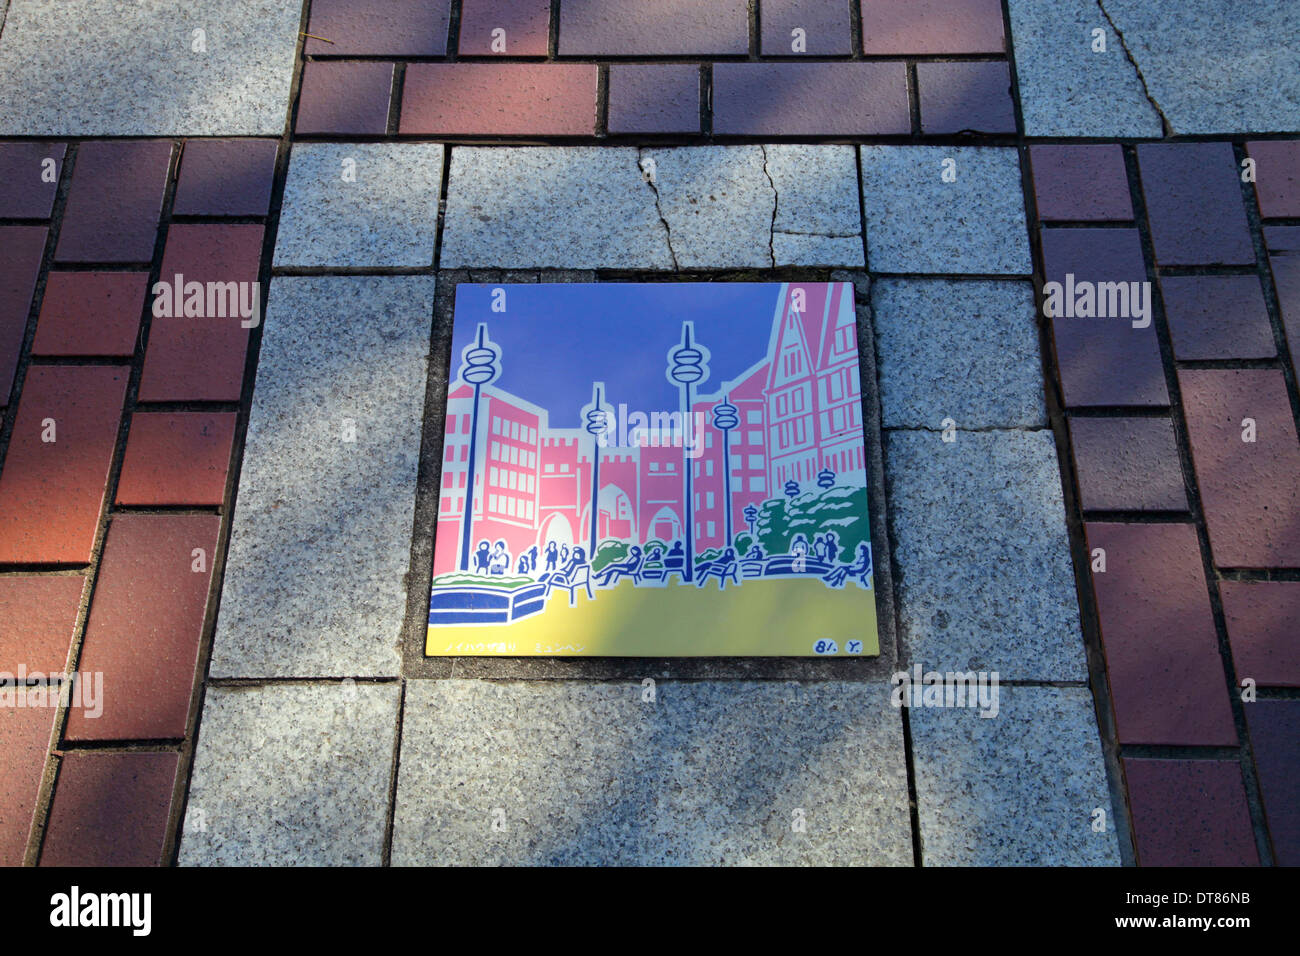 Illustrated tile on the sidewalk Tama Center shopping area Tokyo ...